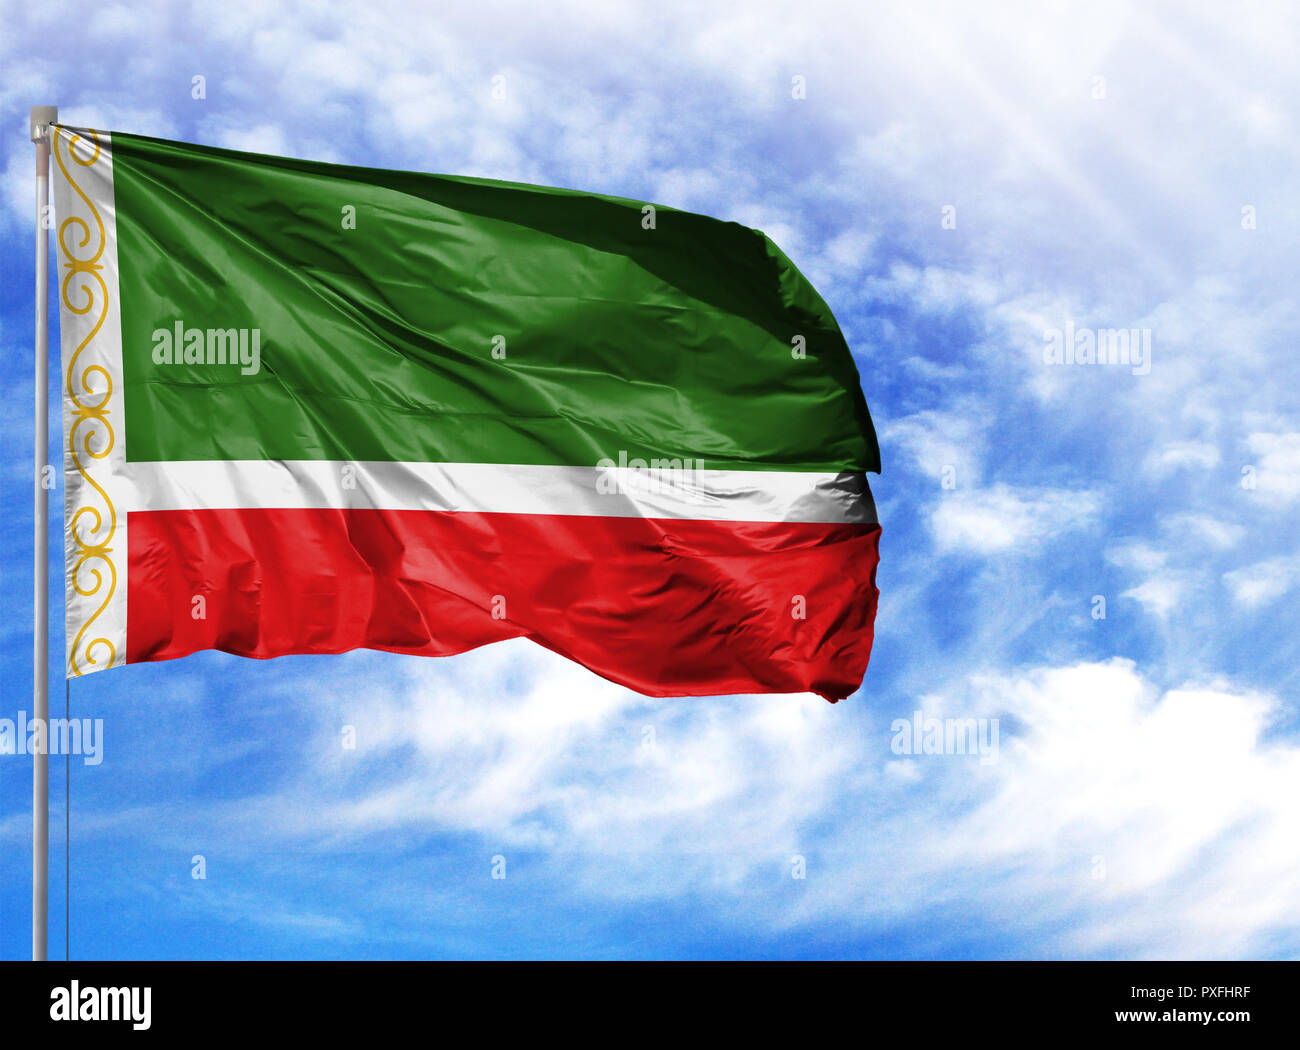 National flag of Chechen Republic on a flagpole in front of blue sky. - Stock Image